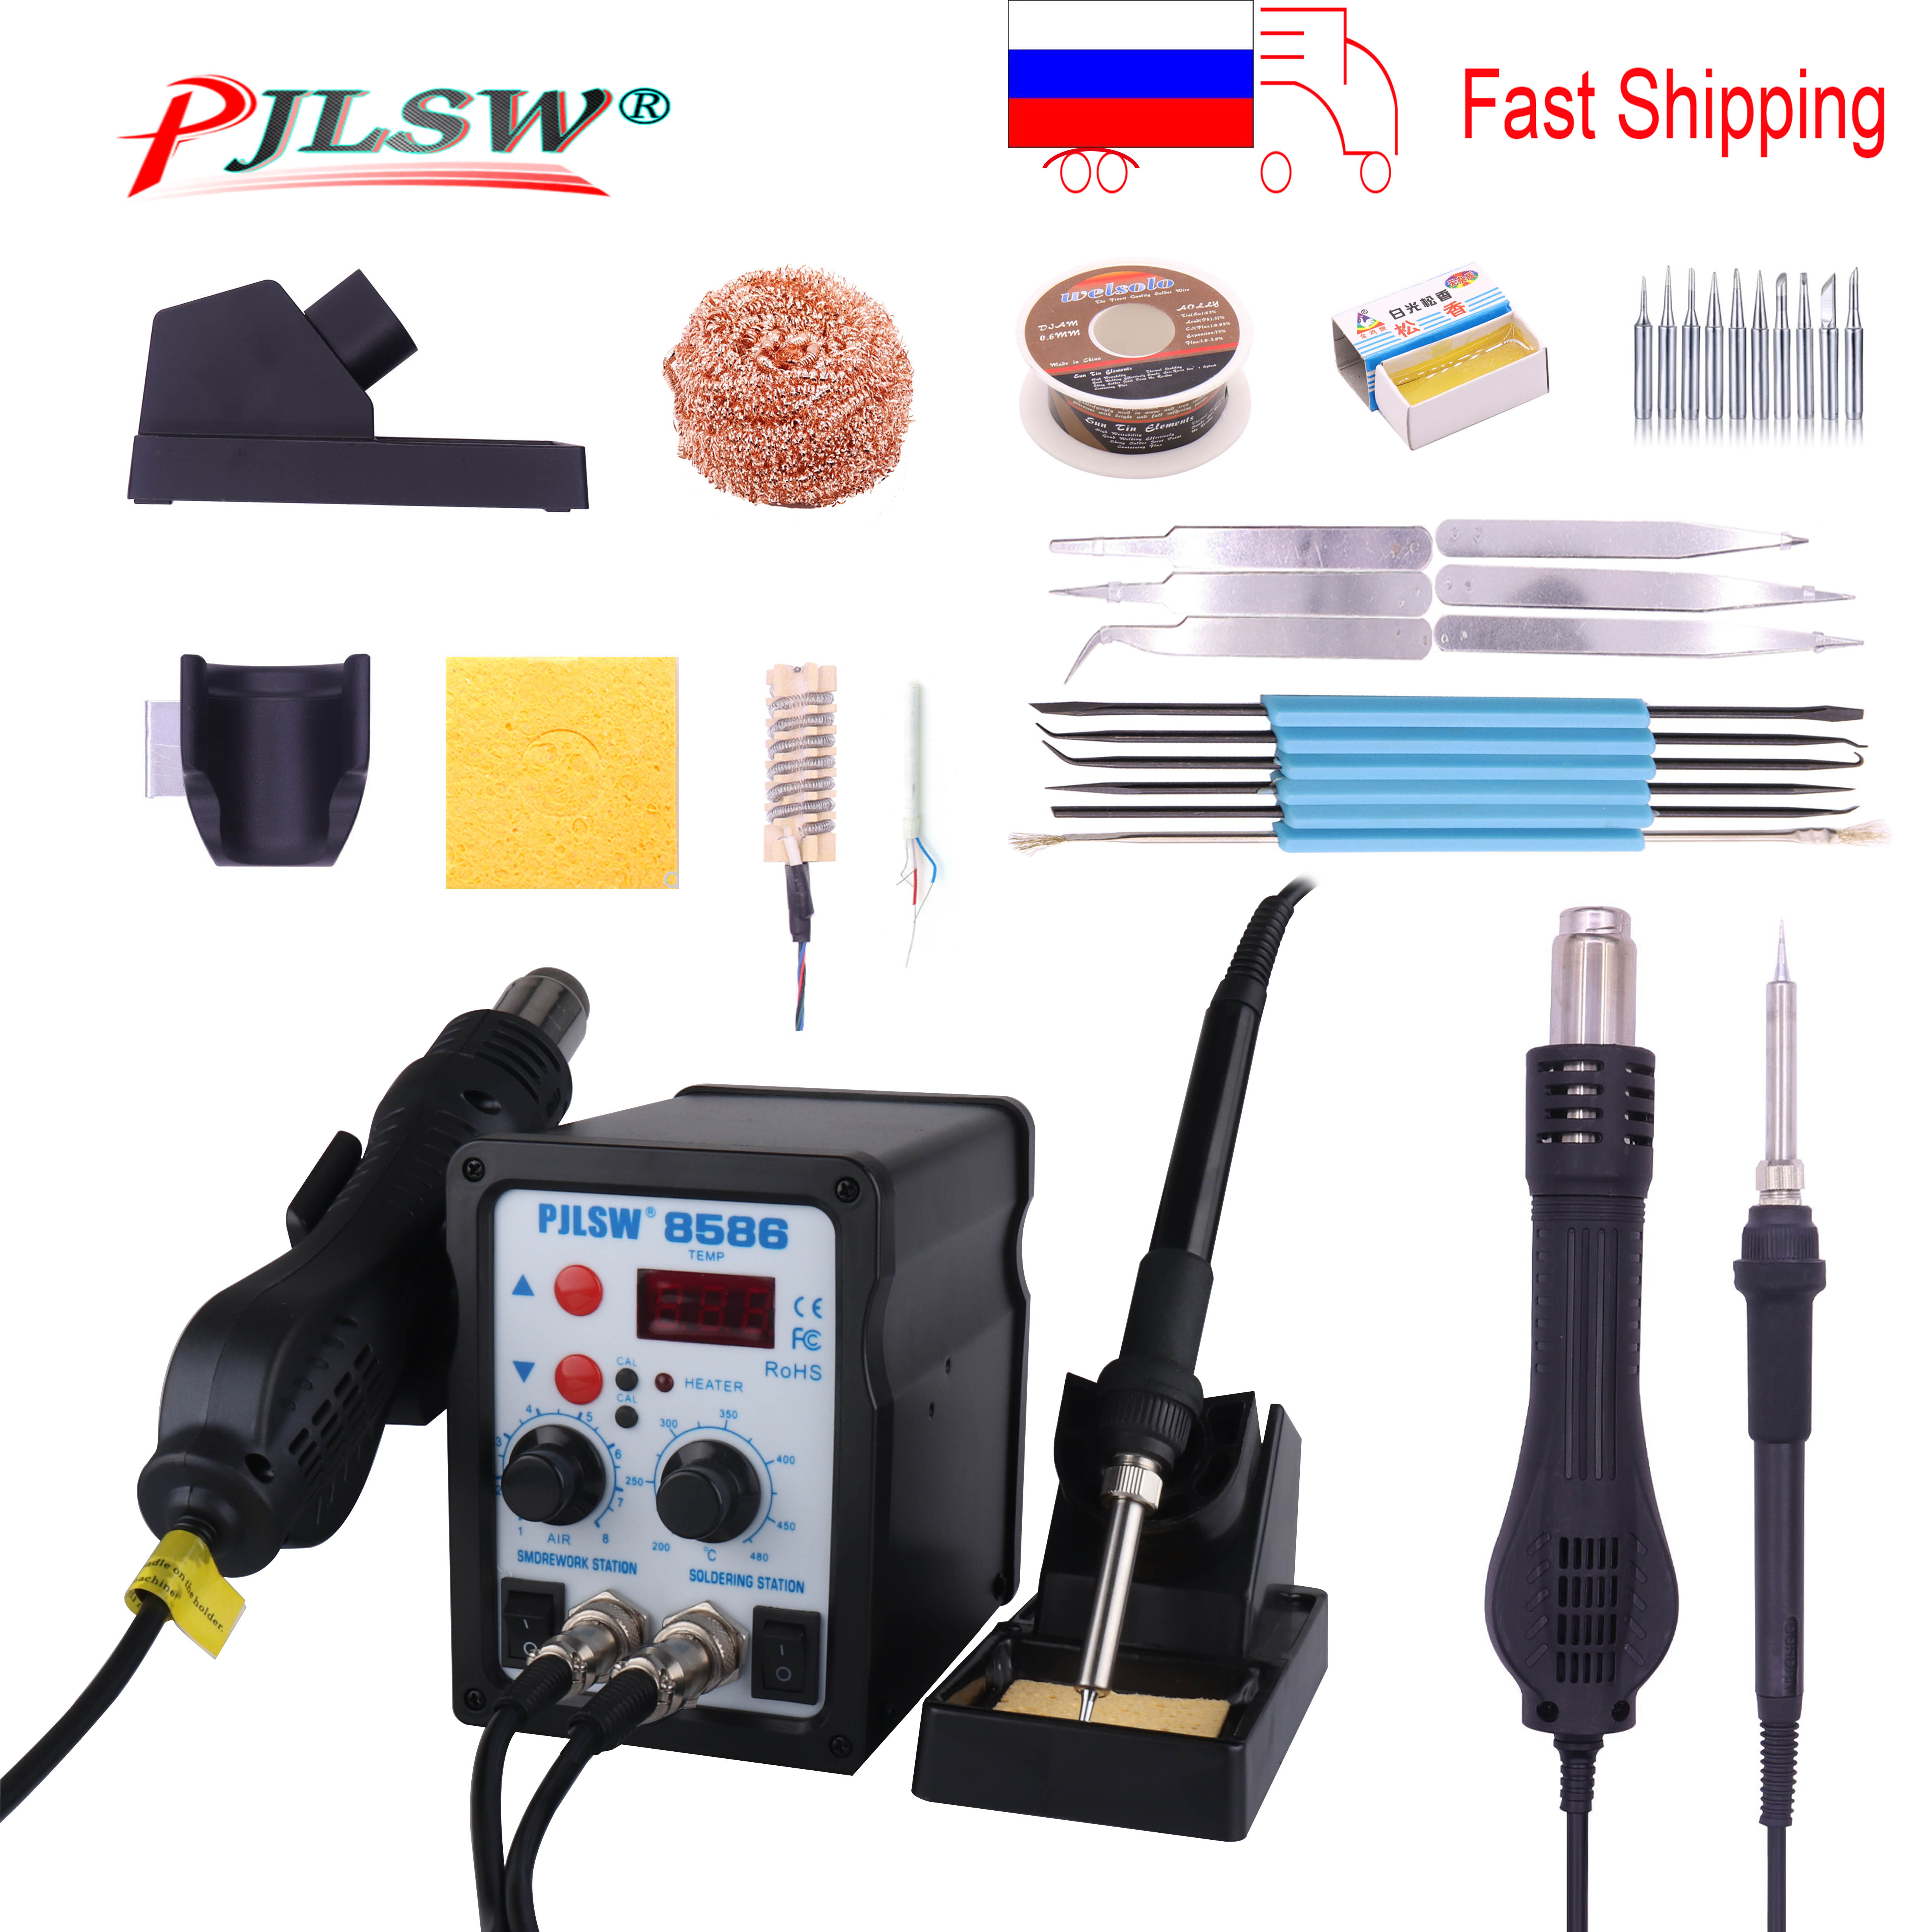 PJLSW 8586 750W ESD Soldering Station LED Digital Solder Iron Desoldering Station BGA Rework Solder Station Hot Air Gun Welder